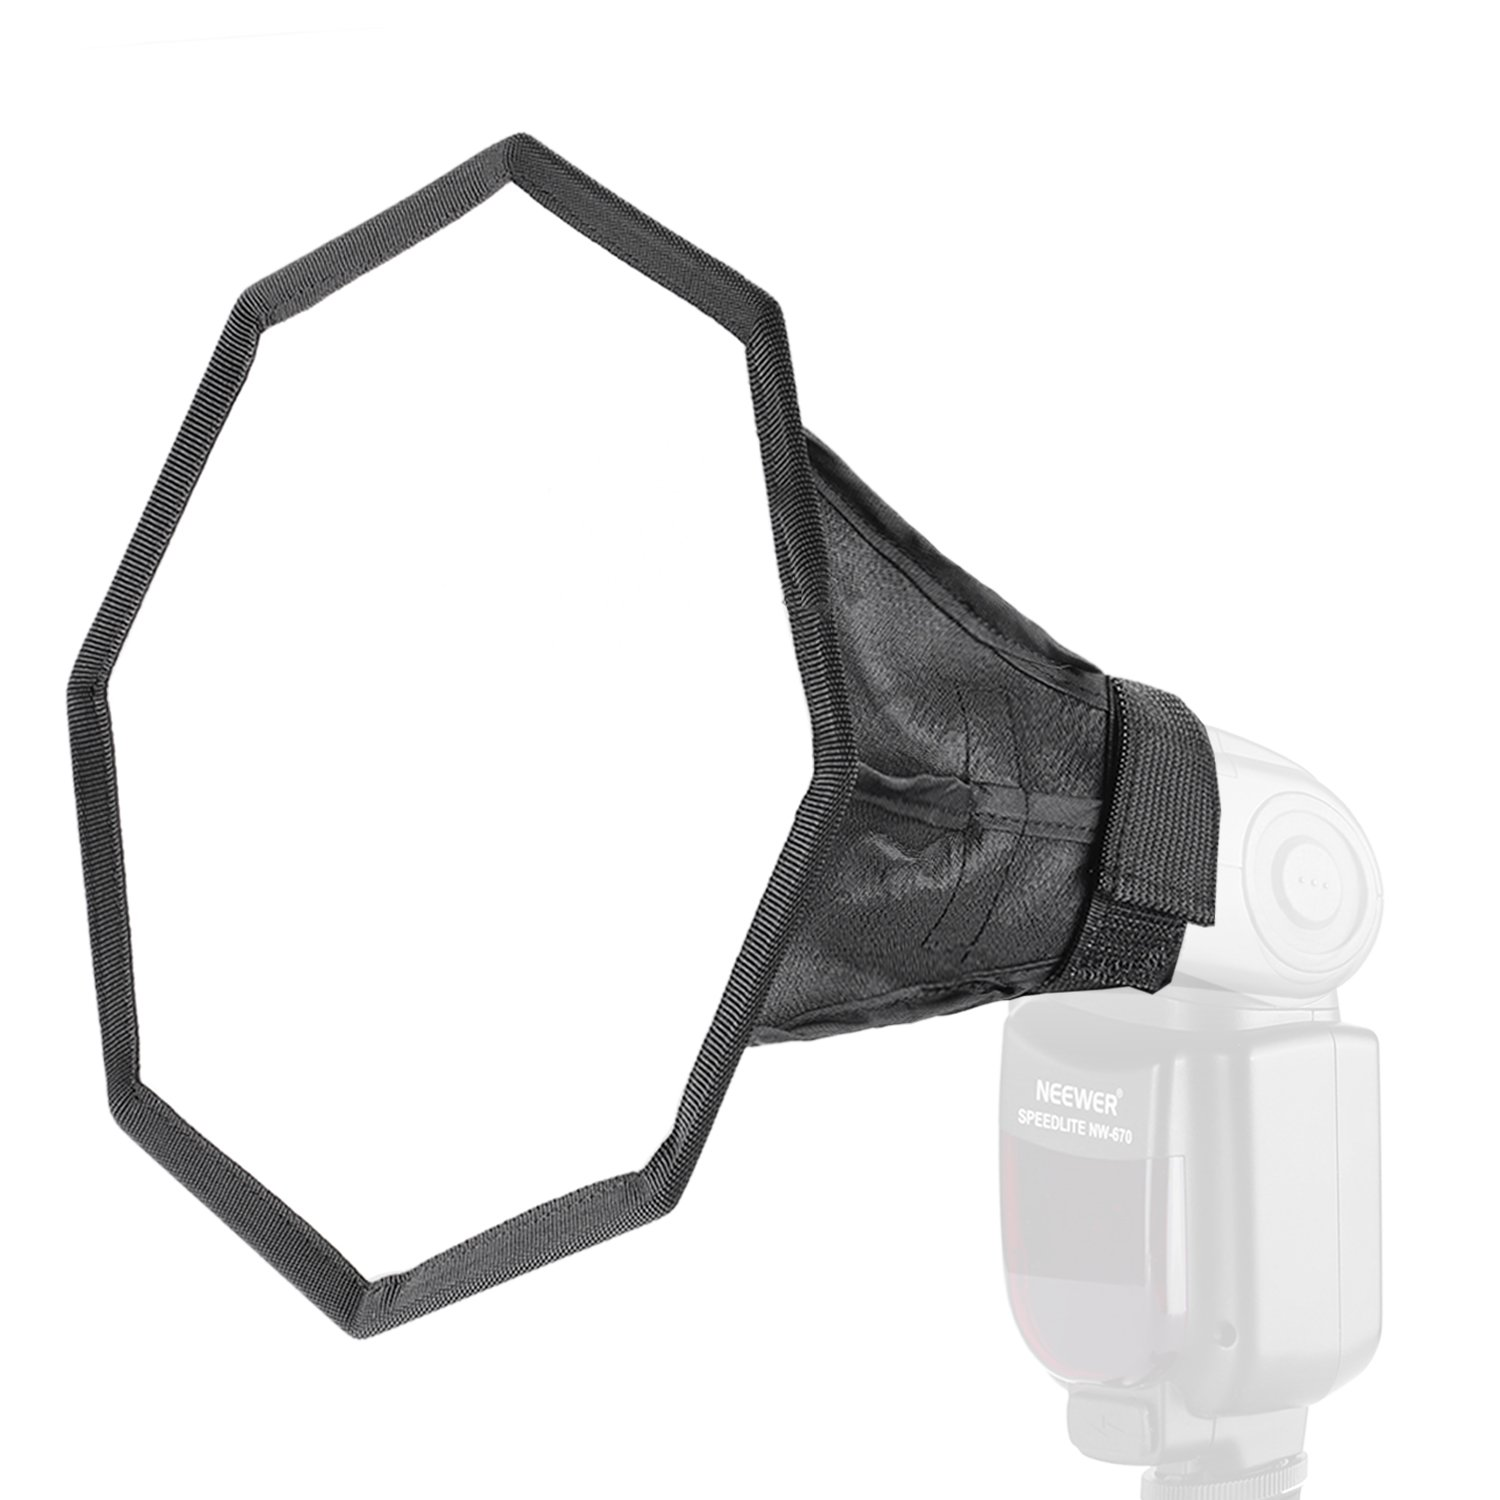 Neewer Pro 8 inches/20 centimeters Universal Collapsible Octagon Studio Softbox Flash Diffuser for On Camera or Off Camera Flash Gun, for Canon, Nikon, Sunpack, Nissin, Sigma, Sony, Panasonic Lumix Flashes by Neewer